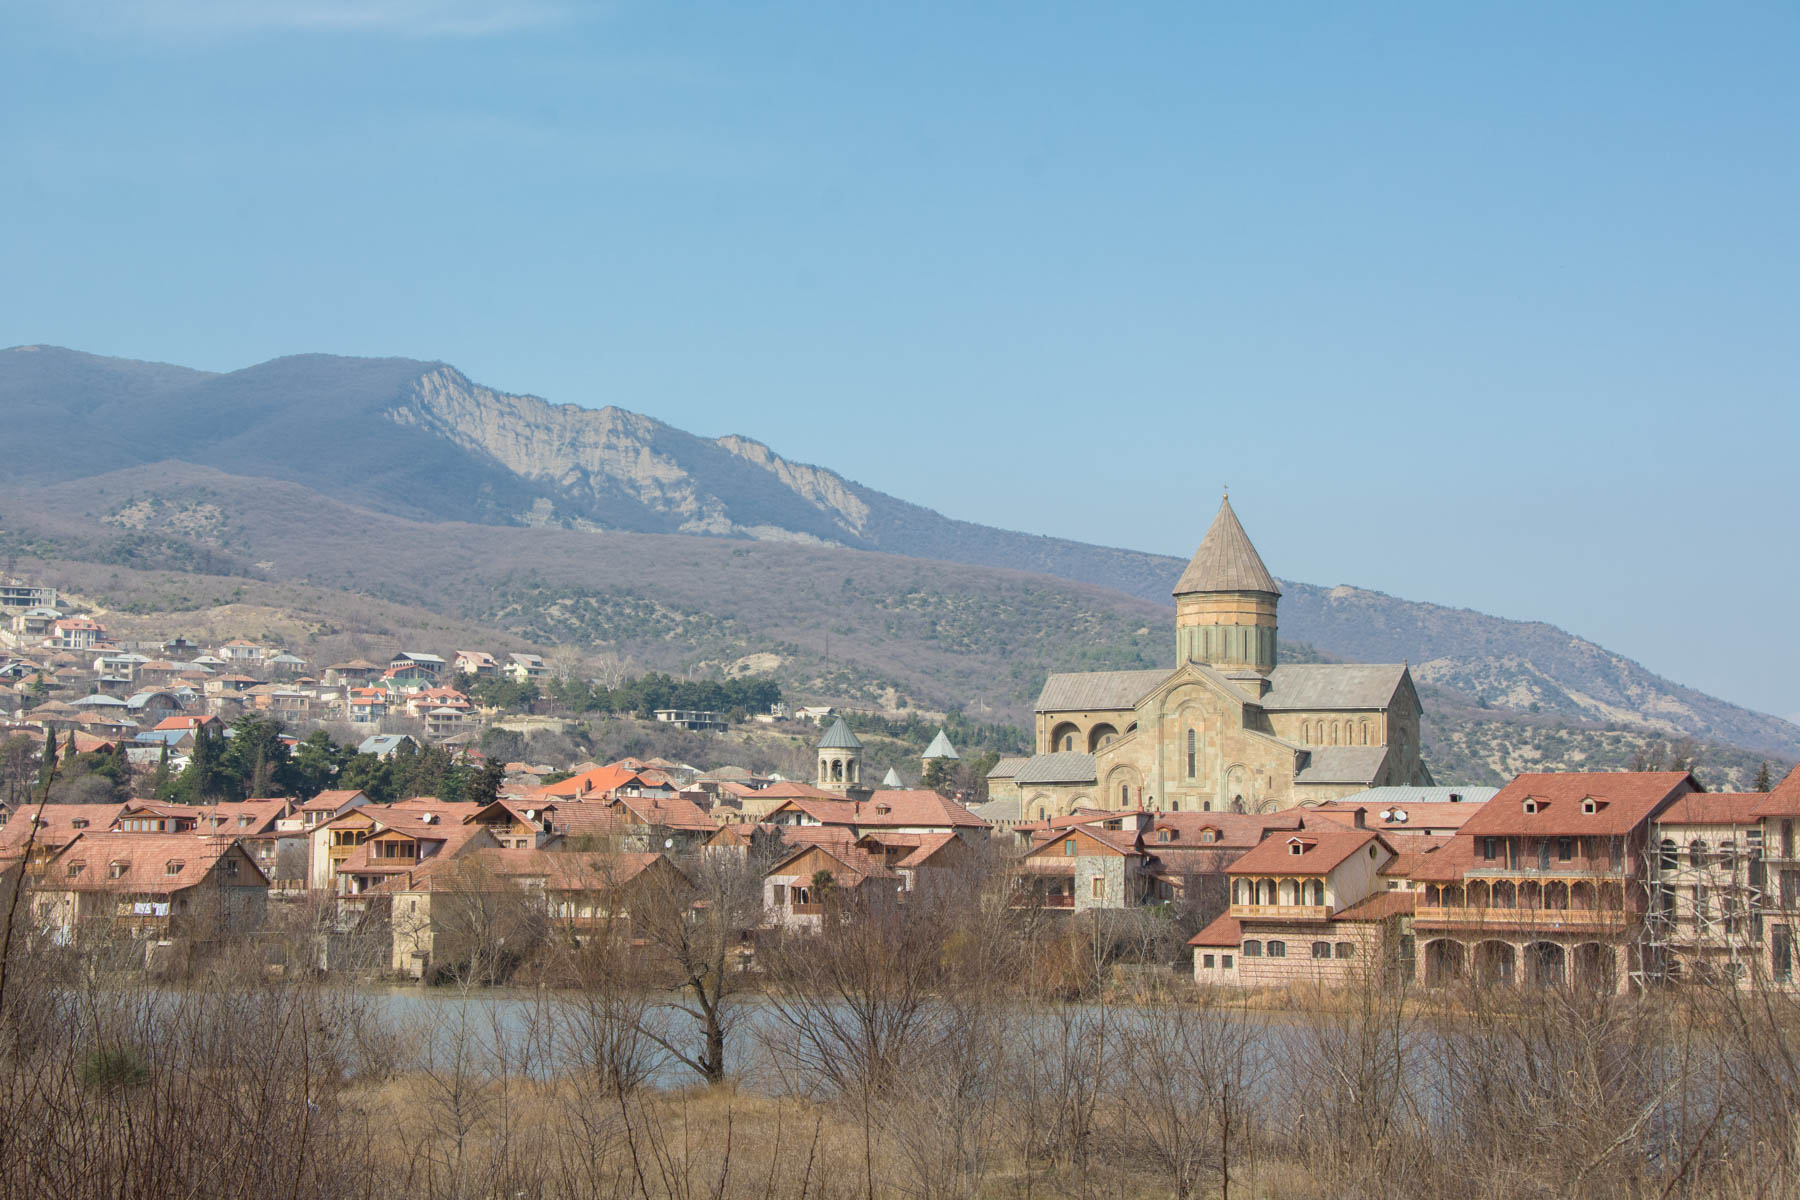 Mtskheta from across the river